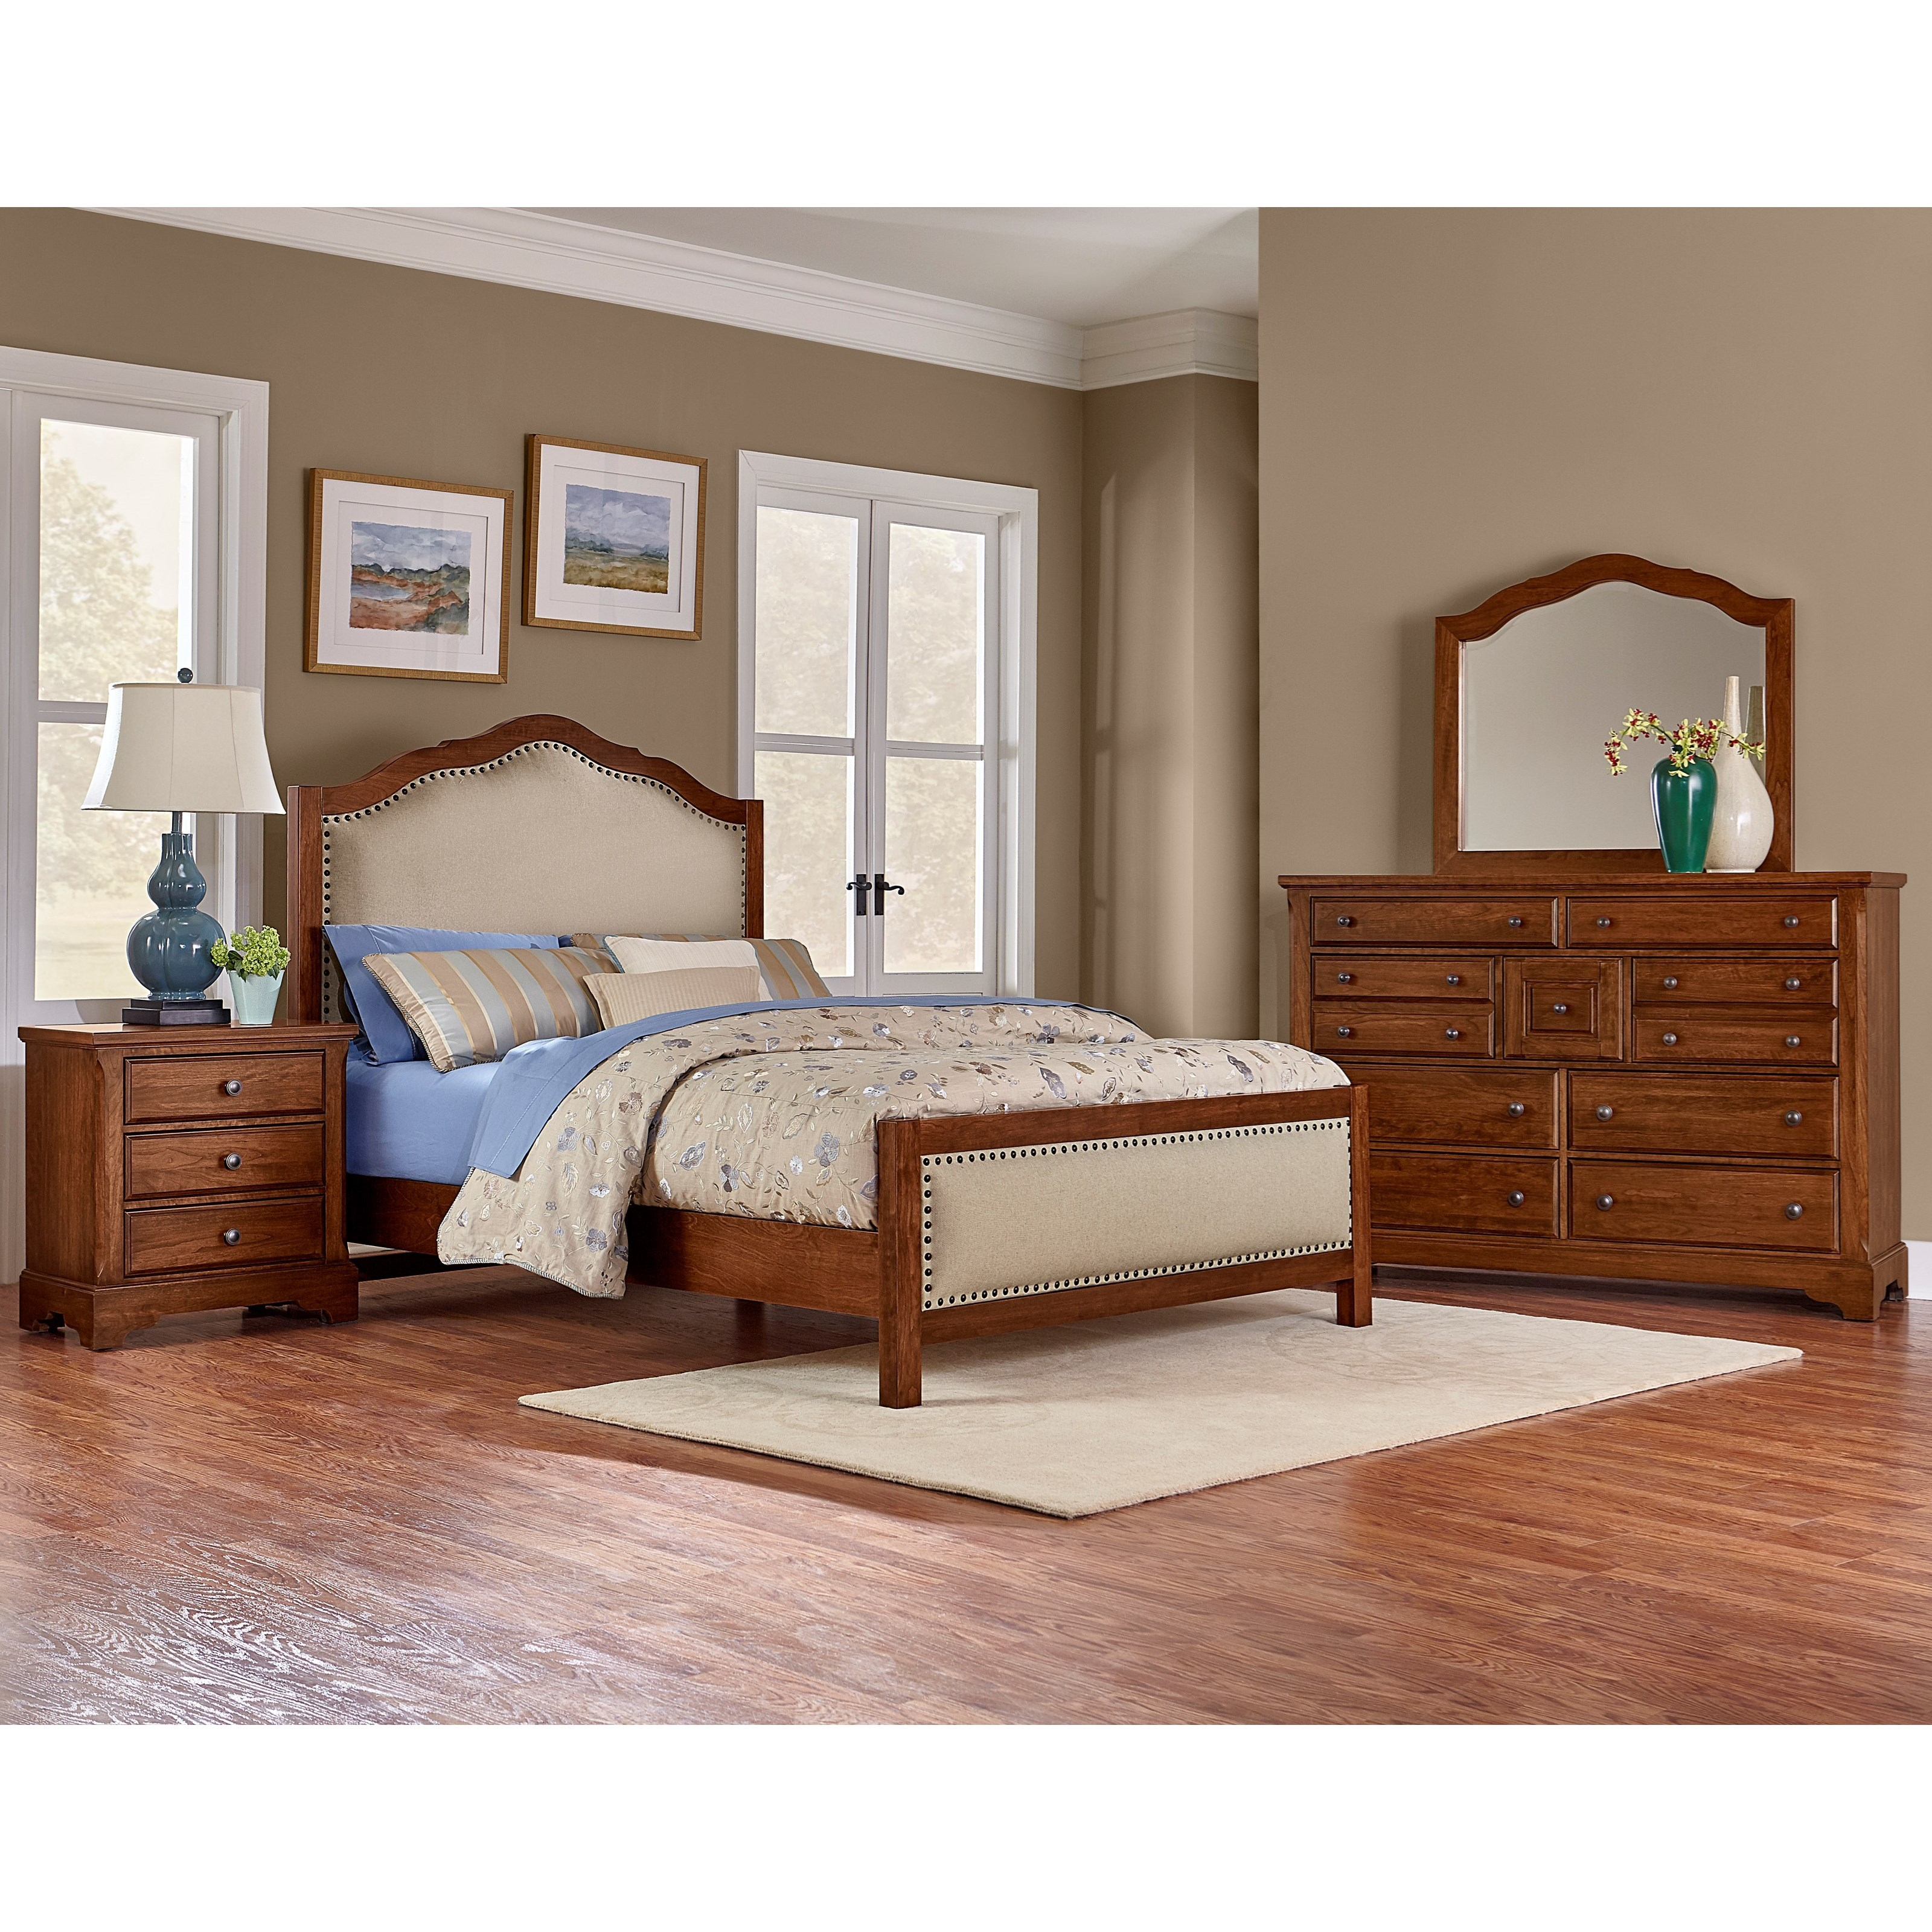 Artisan post artisan choices king bedroom group for Bedroom groups